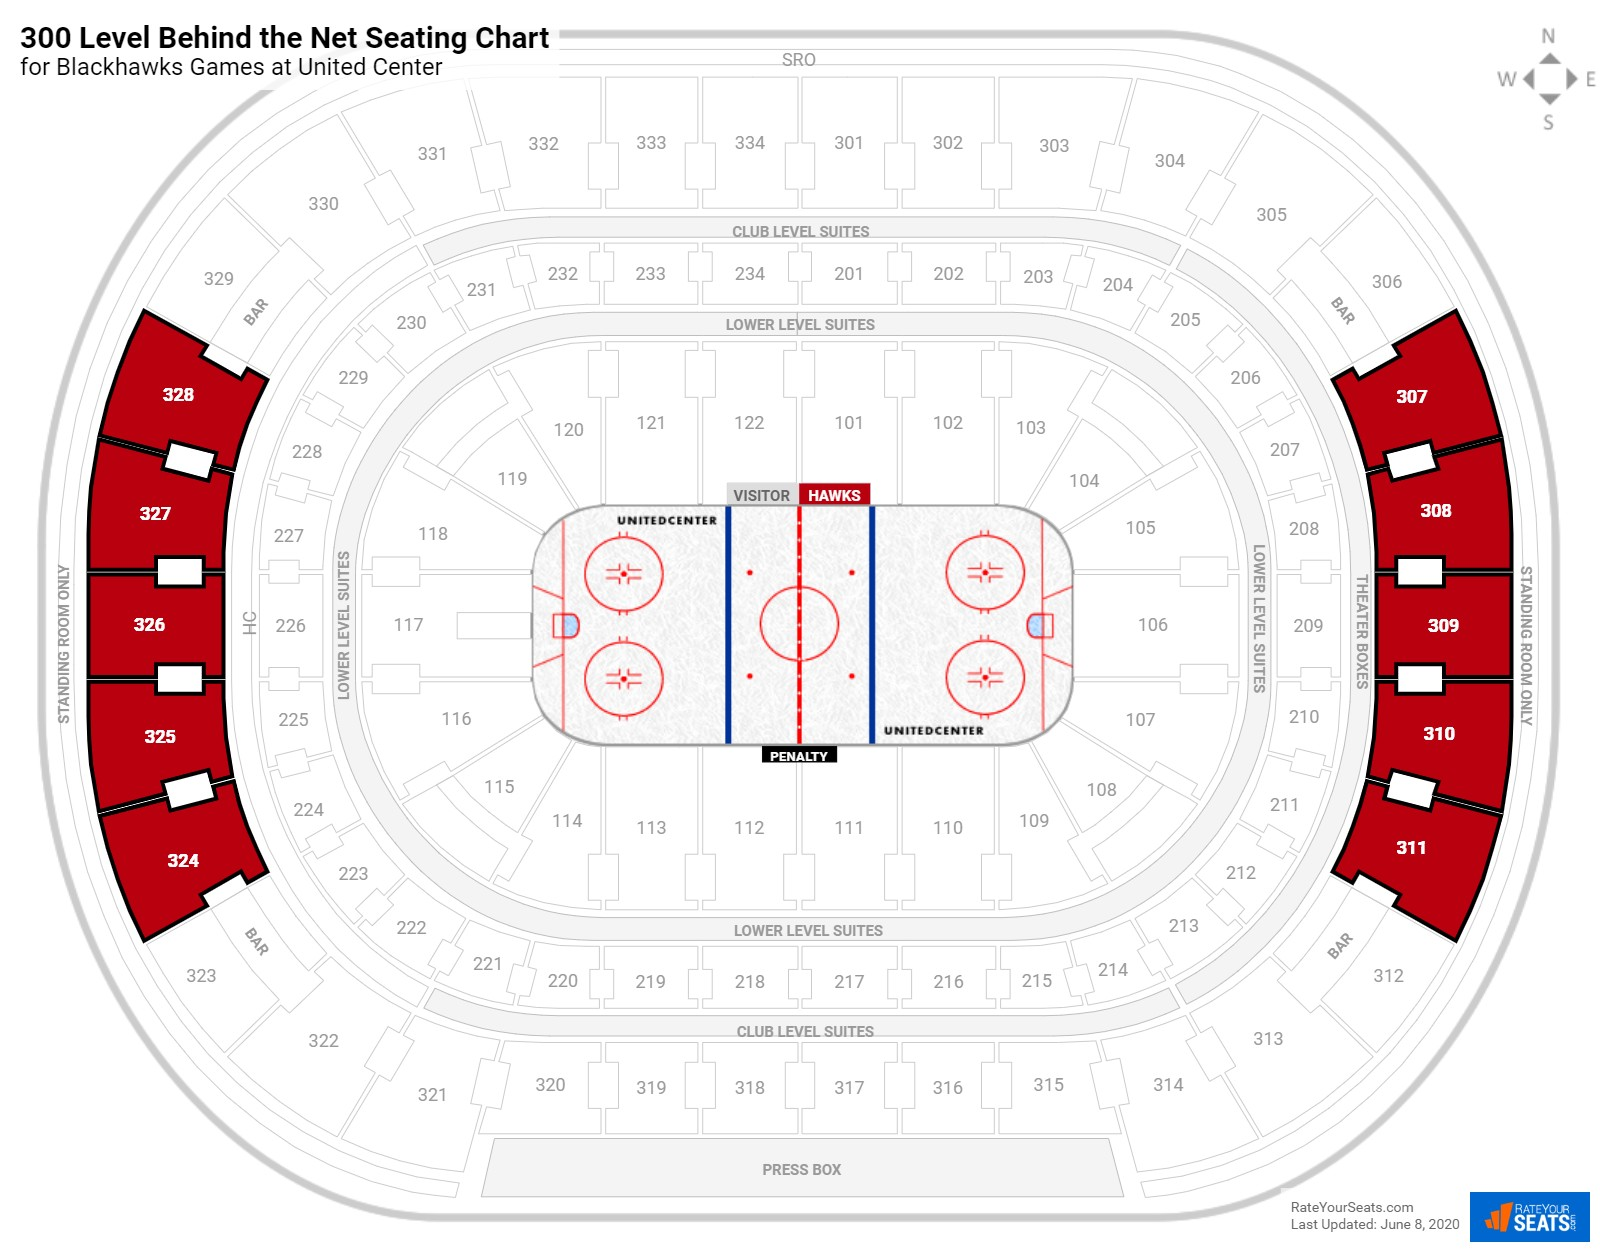 United Center 300 Level Behind the Net seating chart